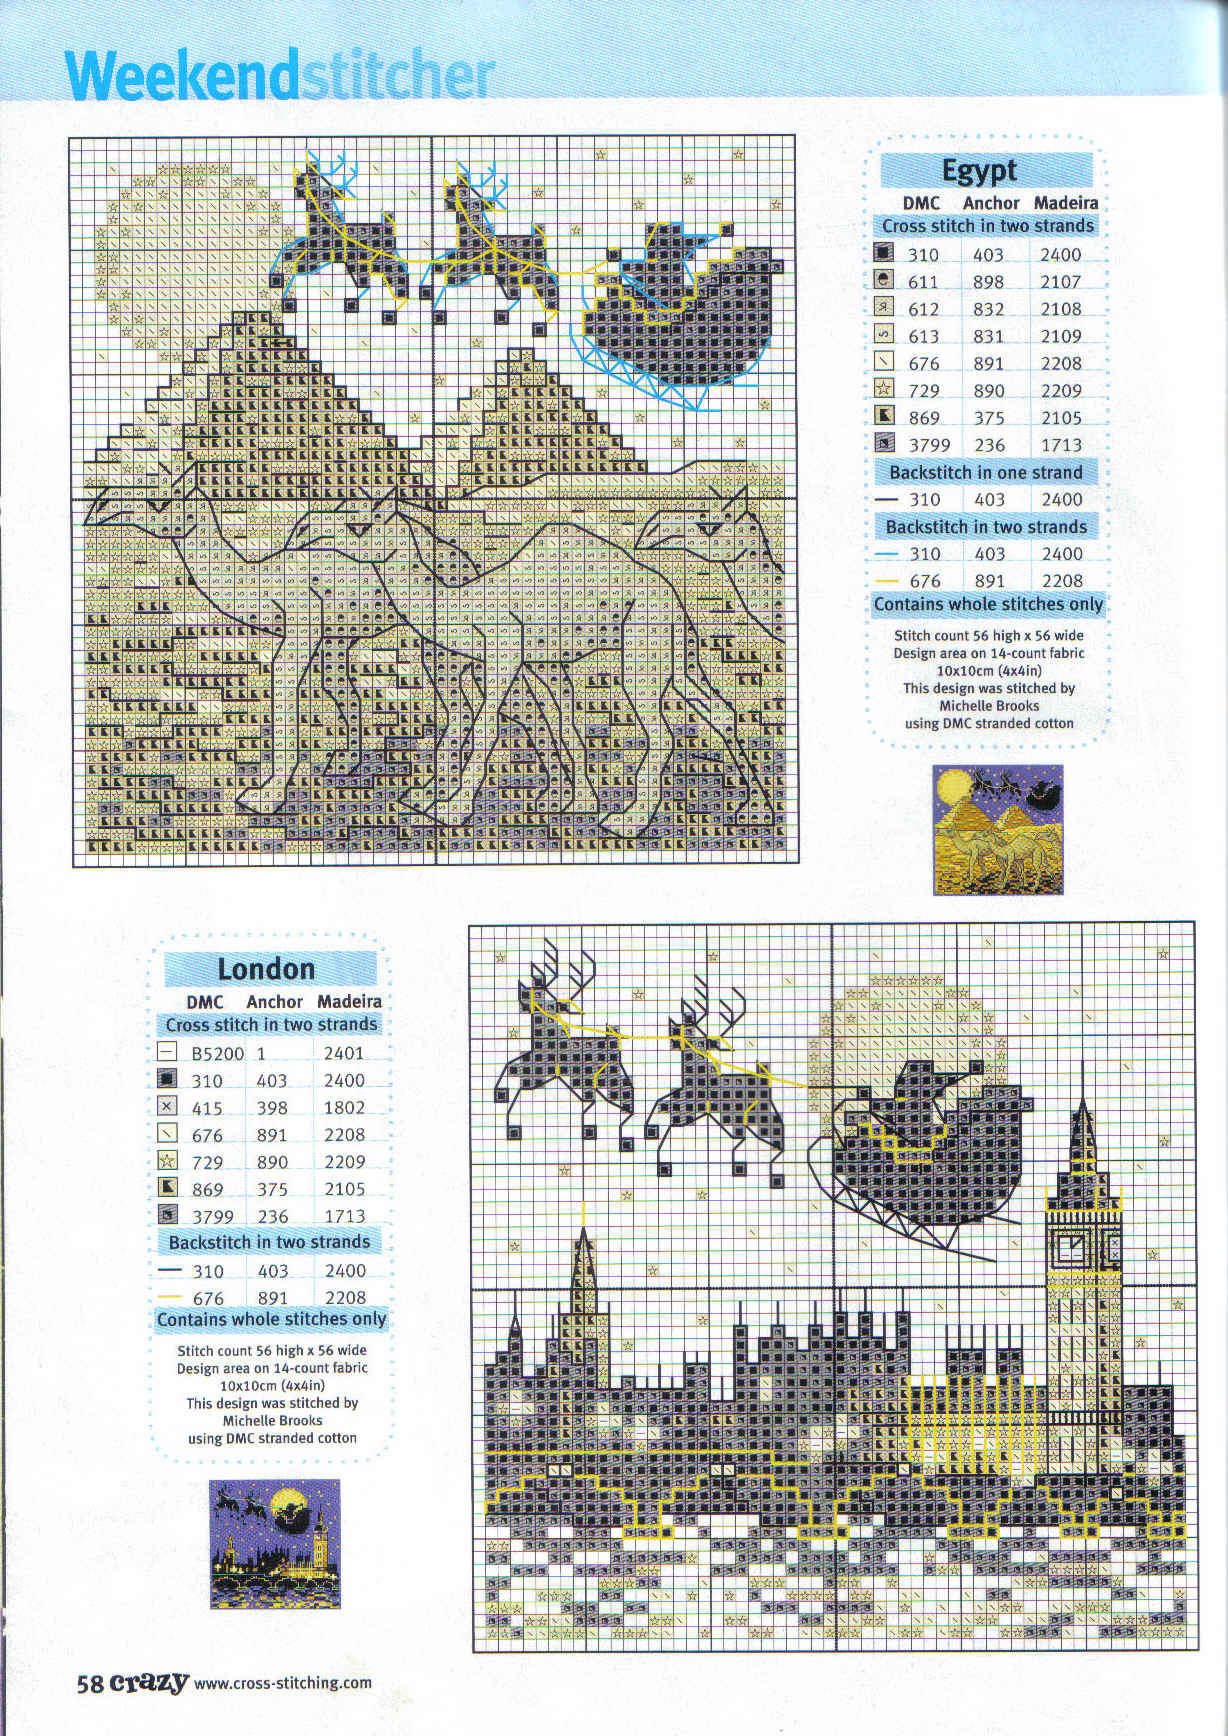 http://make-handmade.com/wp-content/uploads/2011/12/christmas-crafts-santa-s-sleigh-ride-cross-stitch-kits-make-handmade-3d10ae67d130d.jpg